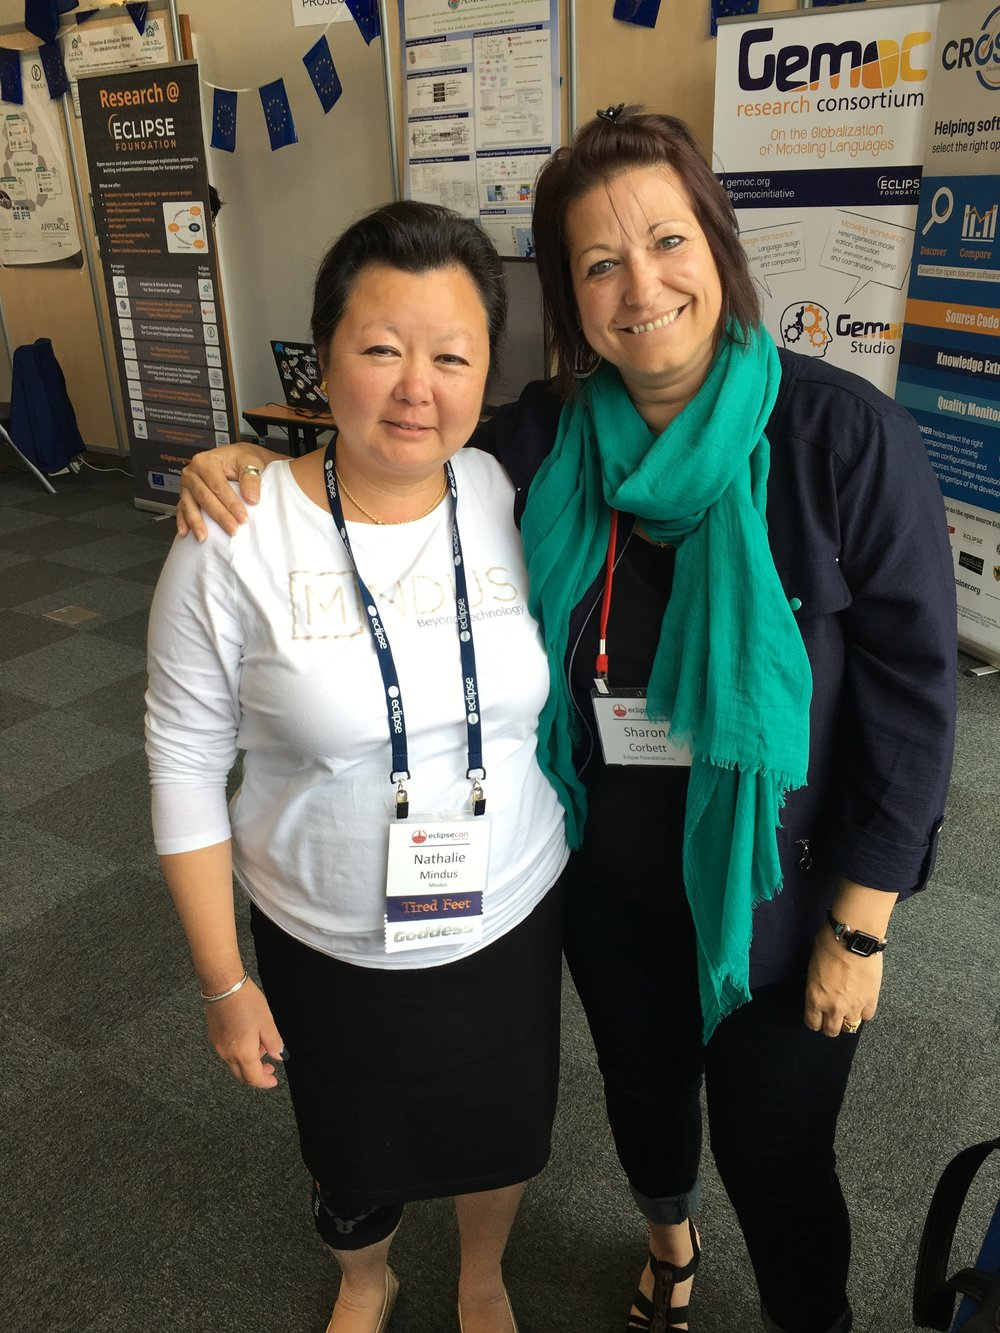 Nathalie Mindus with EclipseCon's Sharon Corbett